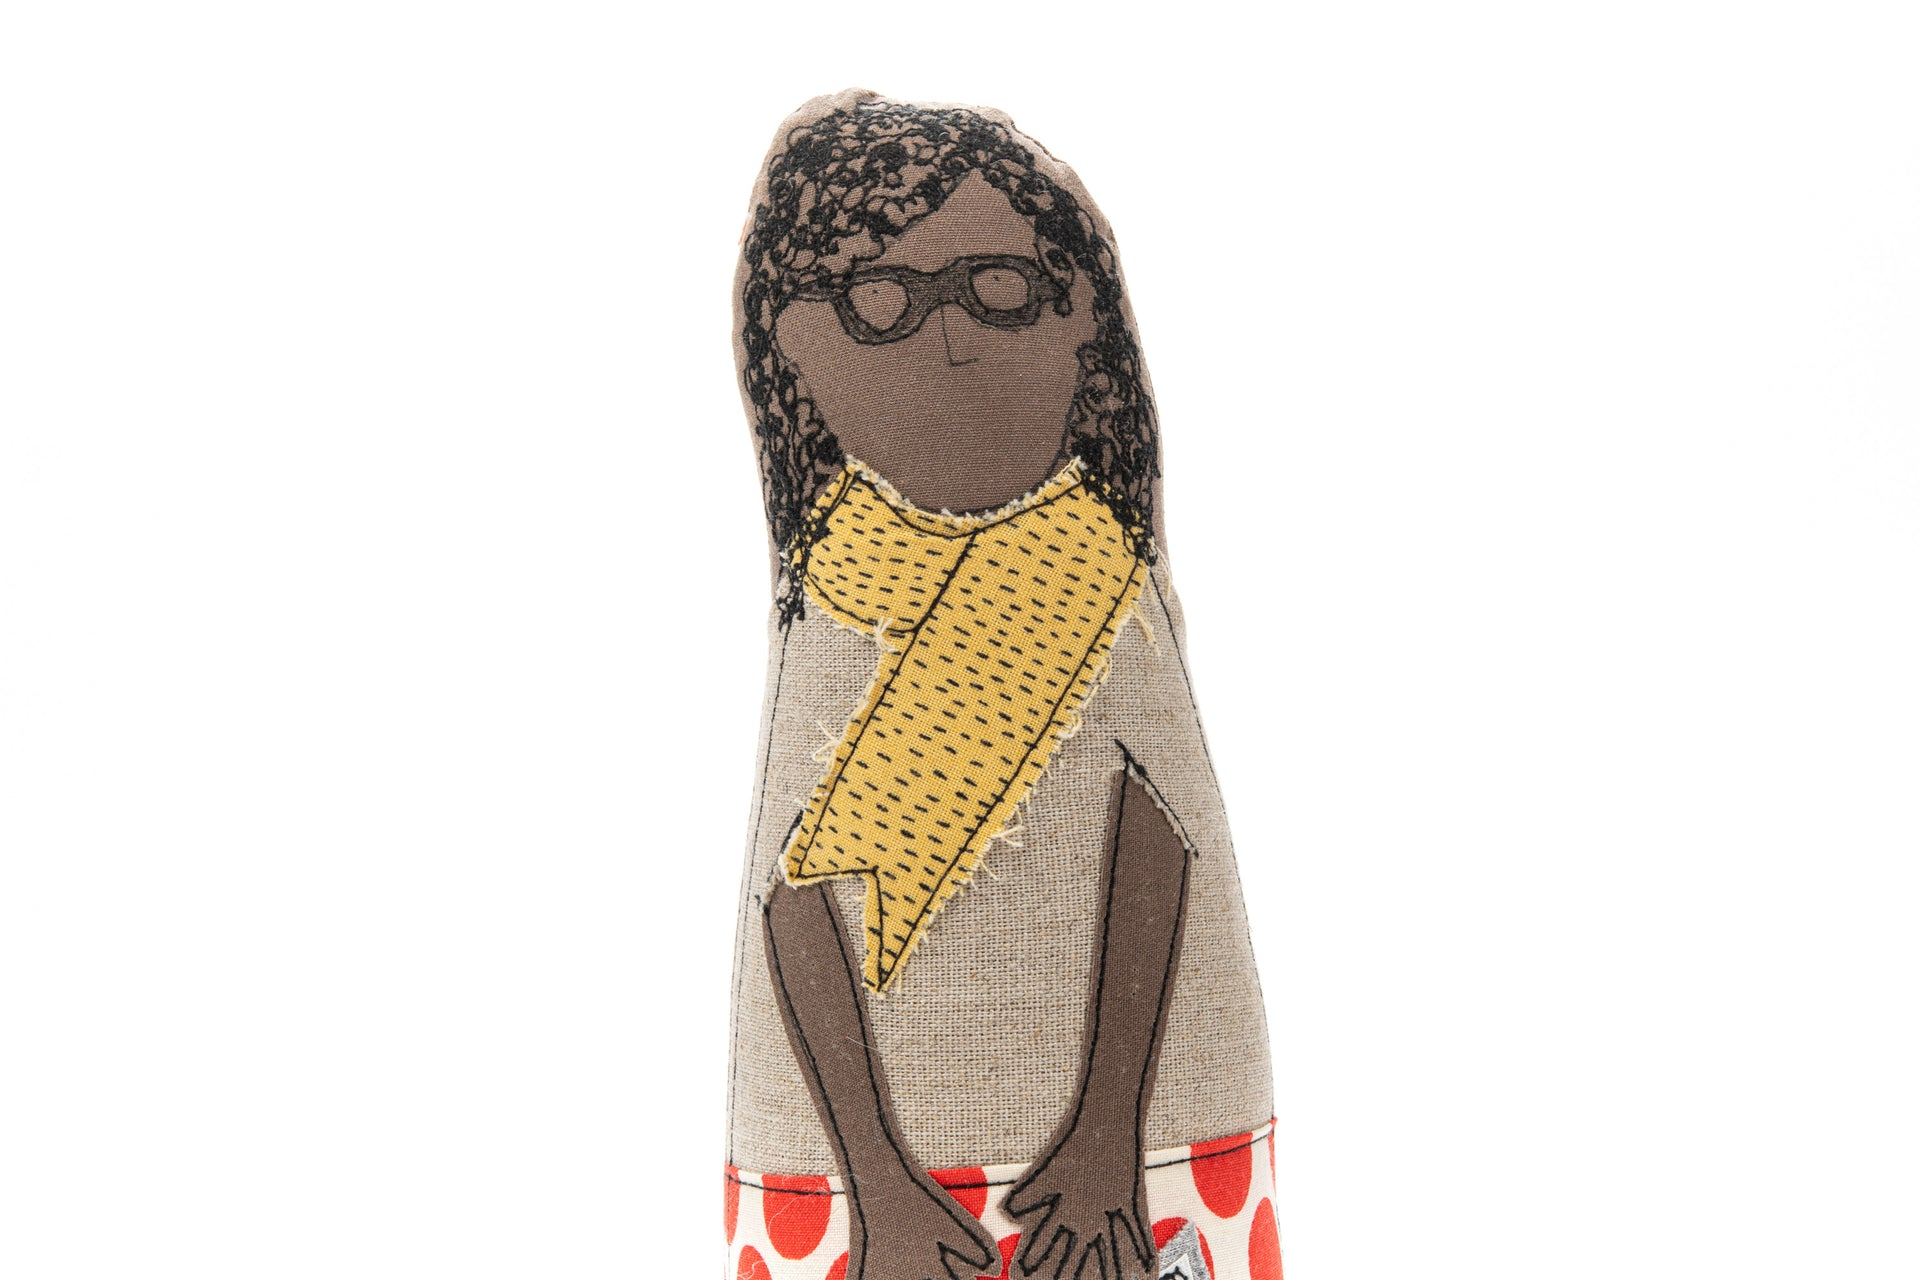 Interior doll, Soft sculpture, Handmade doll, Decor doll, Teacher gift, Brown doll ,Portrait doll, Fabric doll, Woman doll, Family doll